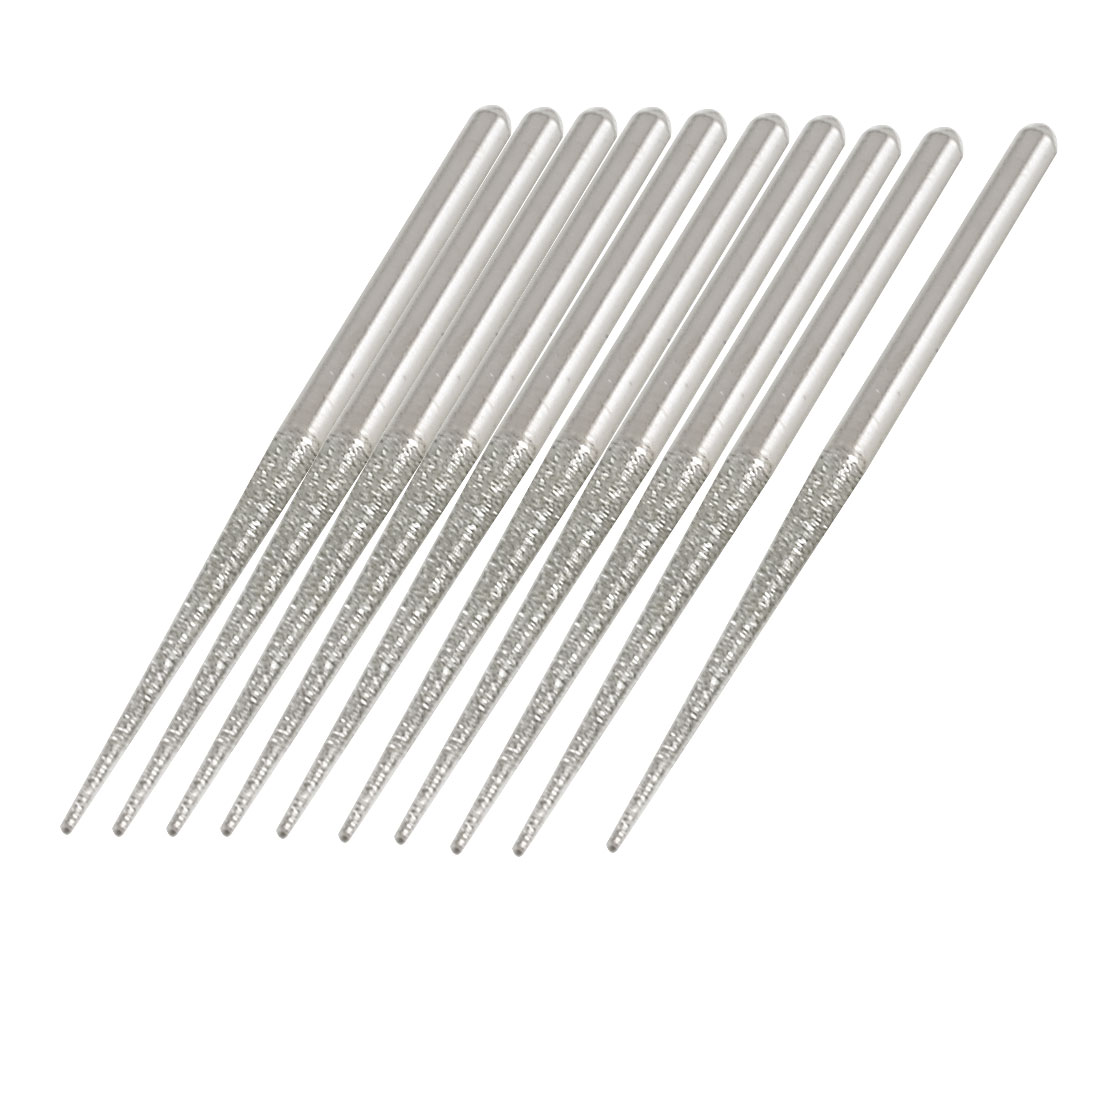 10Pcs 3mm Dia Shank Diamond Coated Tip Abrading Buffing Needle Files 70mm Long